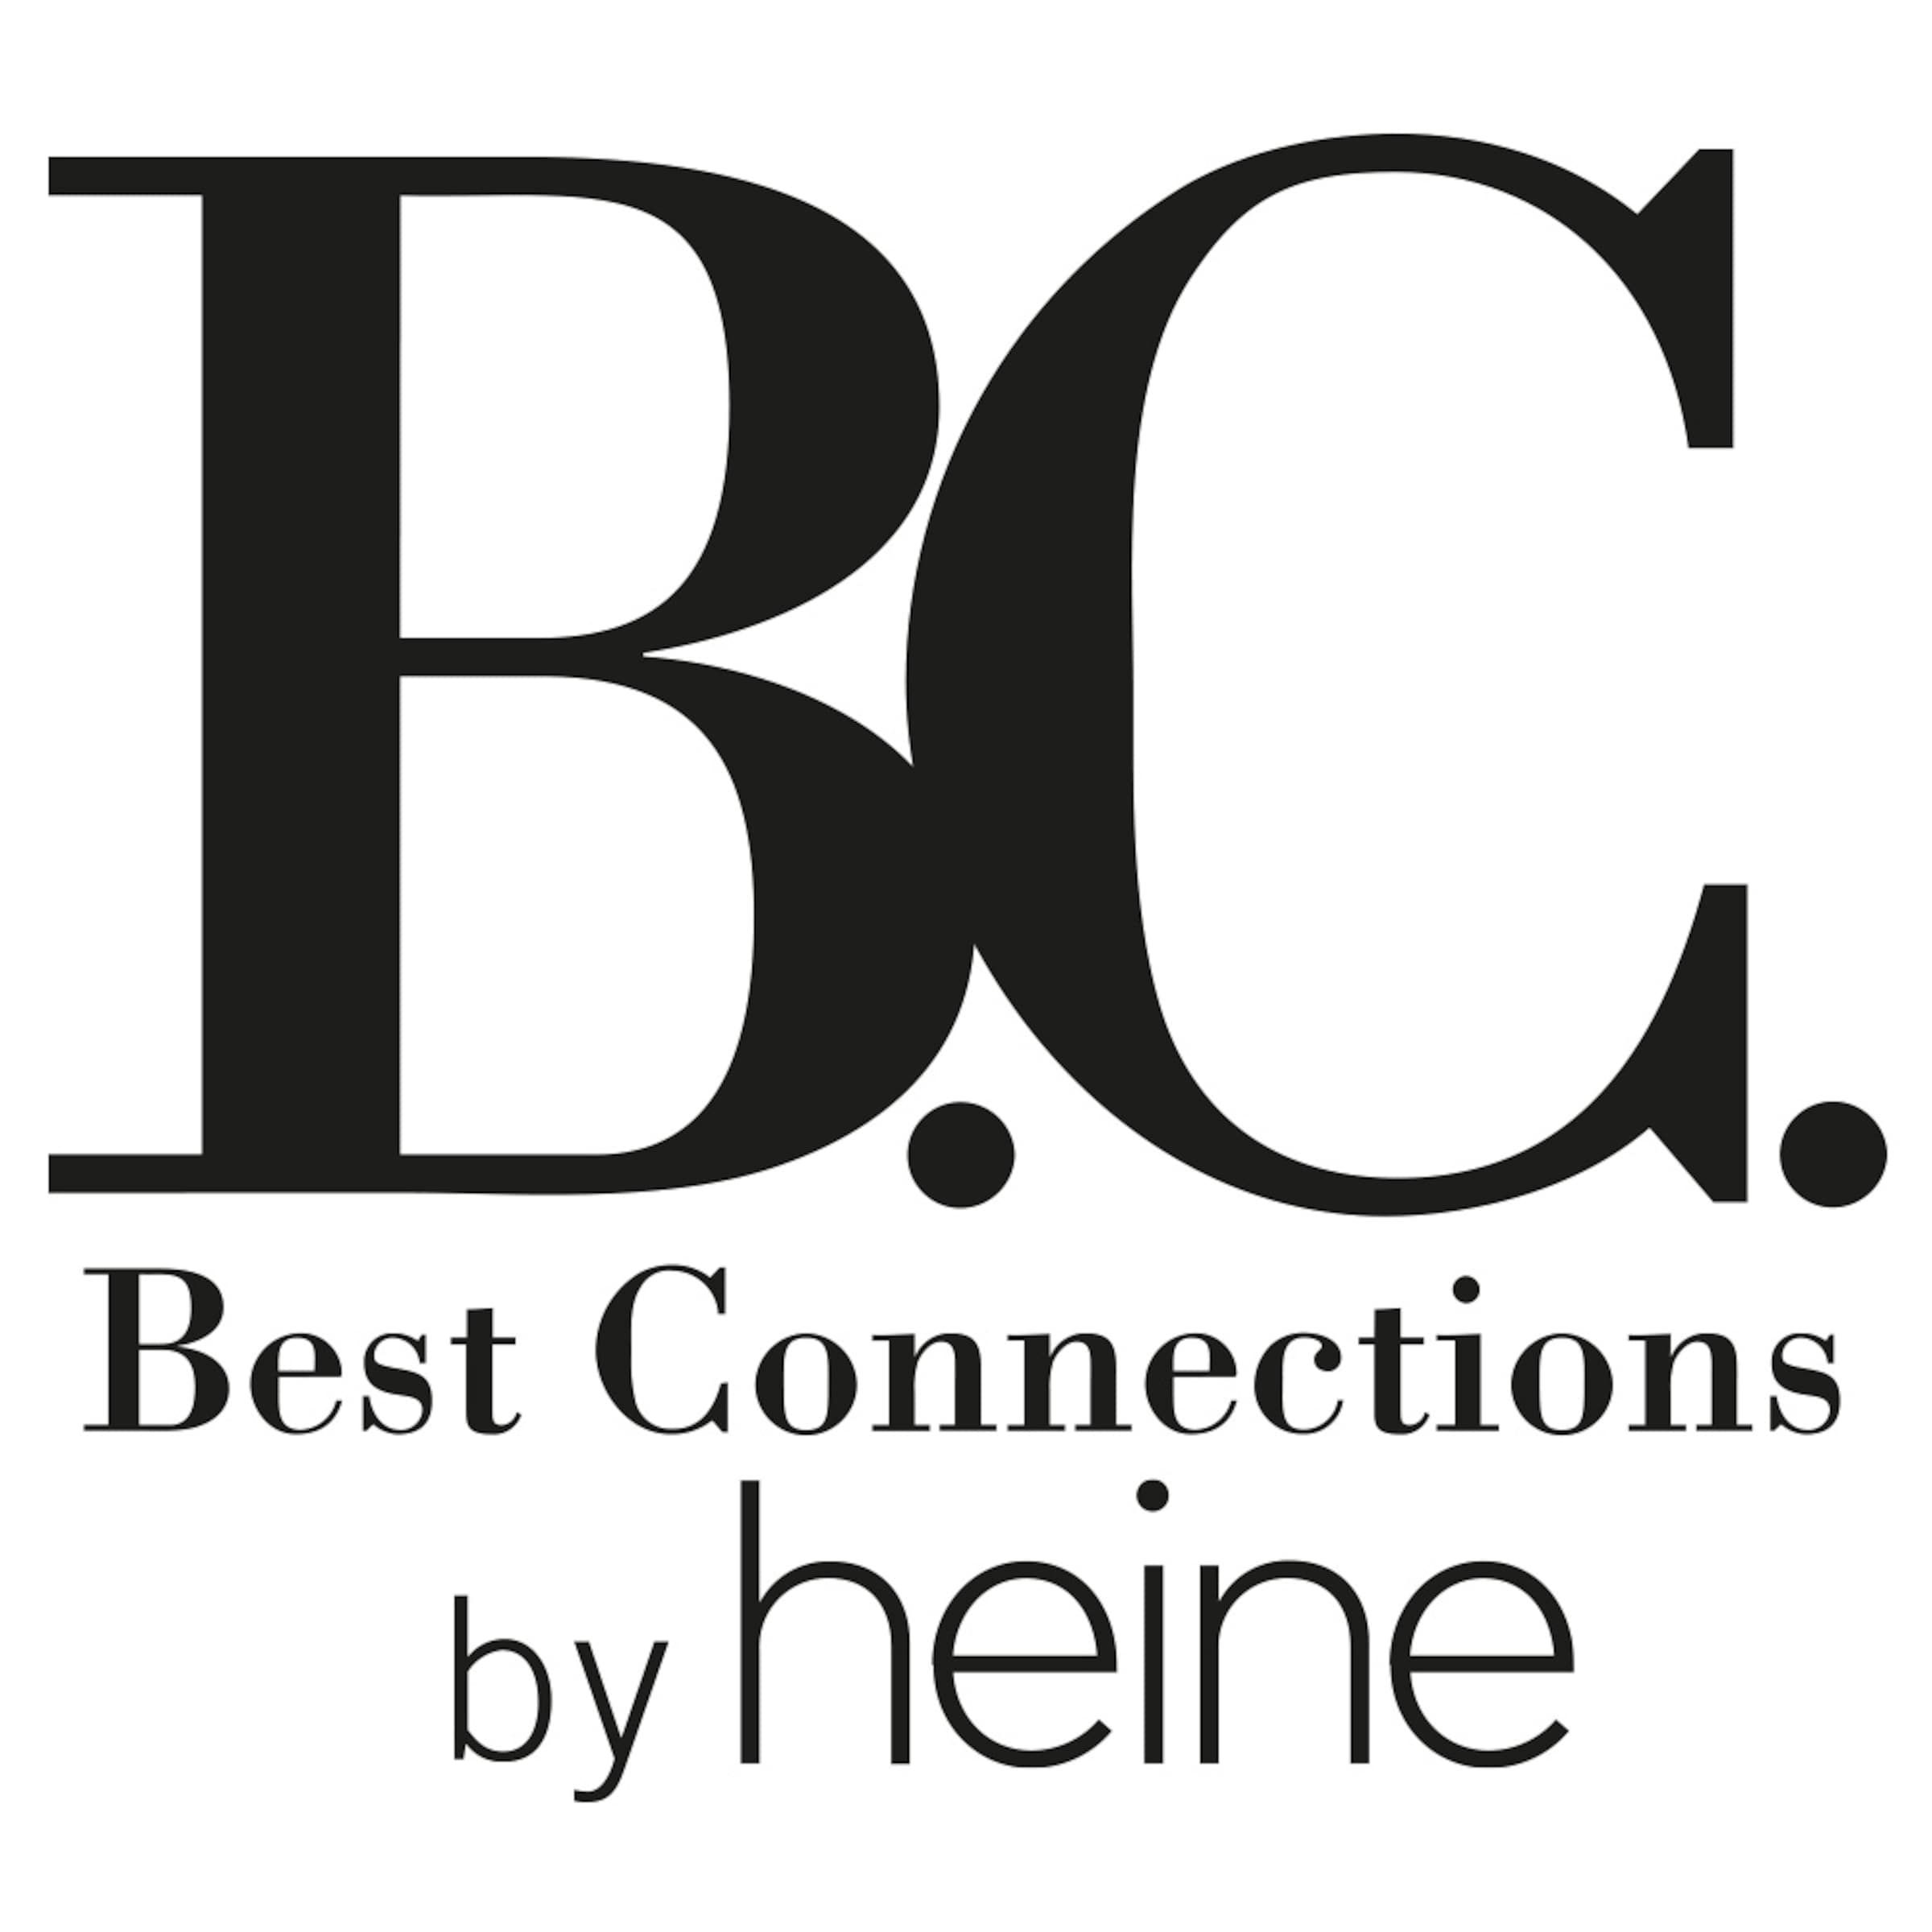 B.C. Best Connections by heine